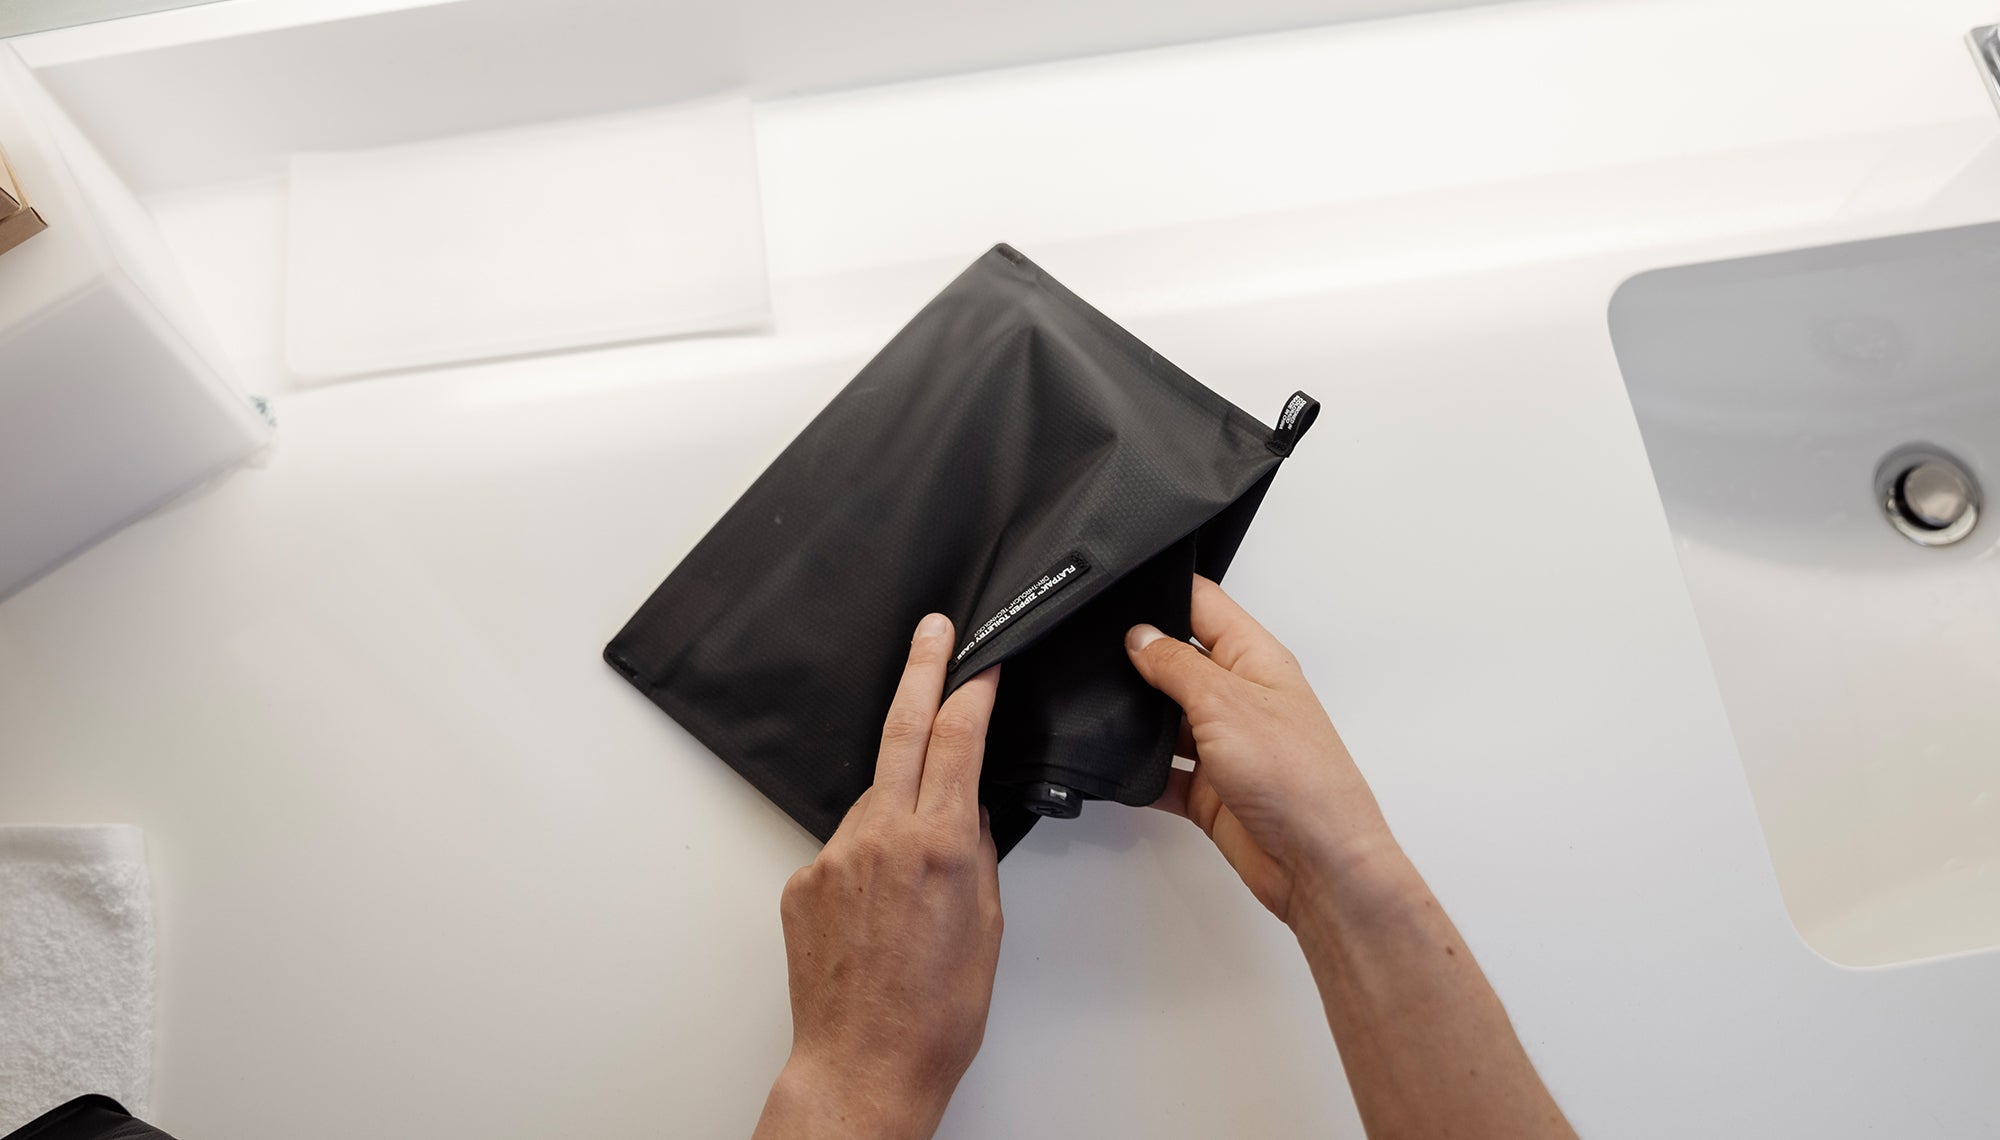 Hands pulling flatpak toiletry bottle from zipper case on bathroom counter